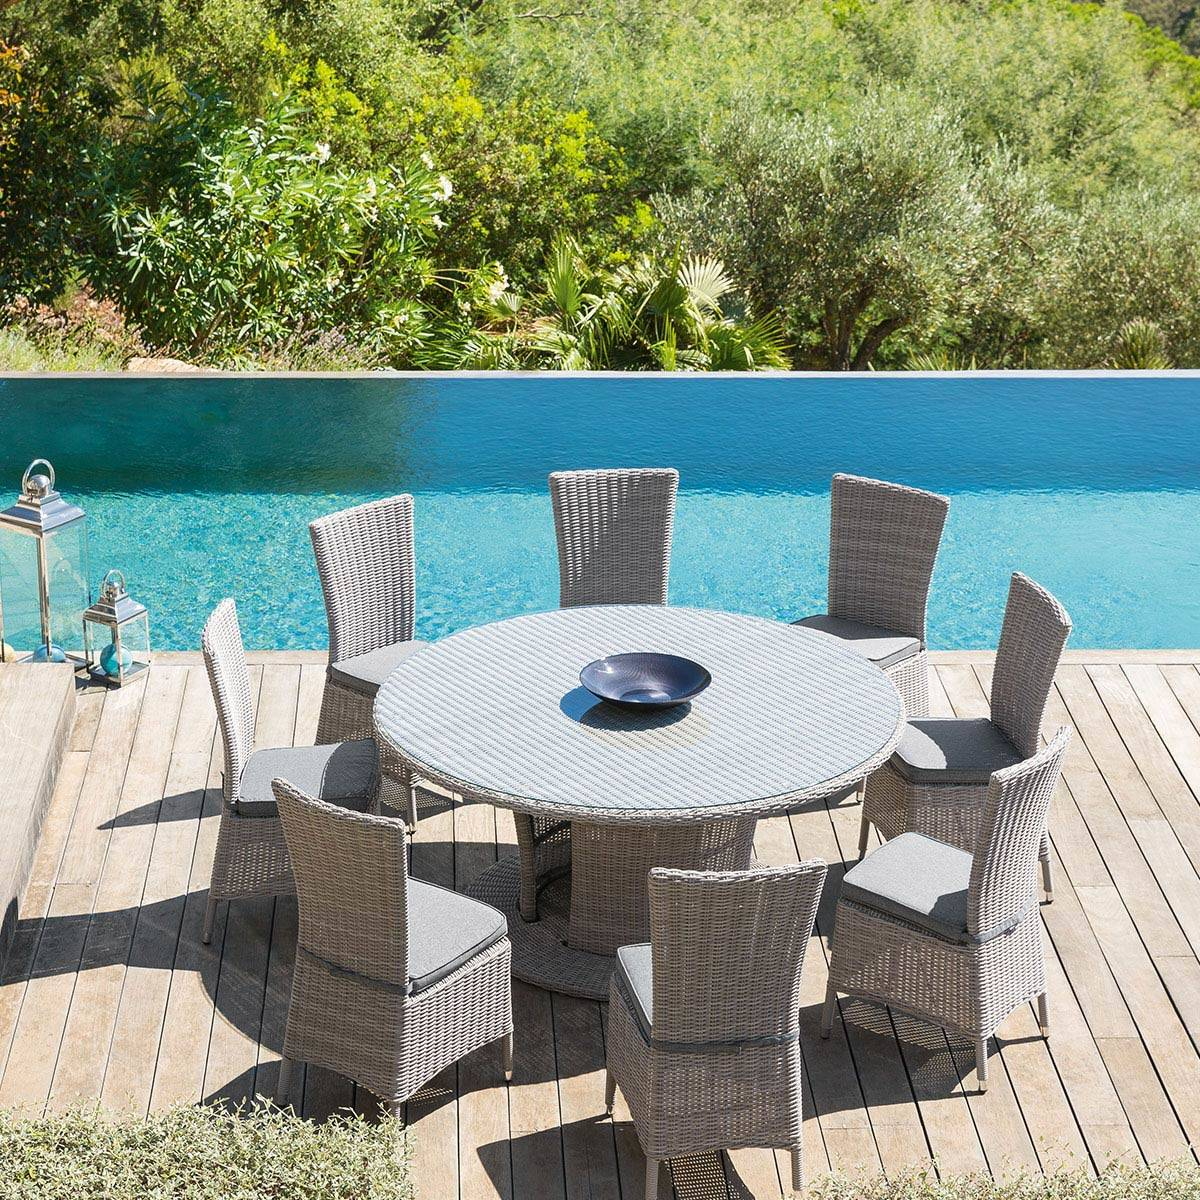 Table De Jardin Ronde Table Ronde Jardin. Grande Table Ronde De Jardin En Teak